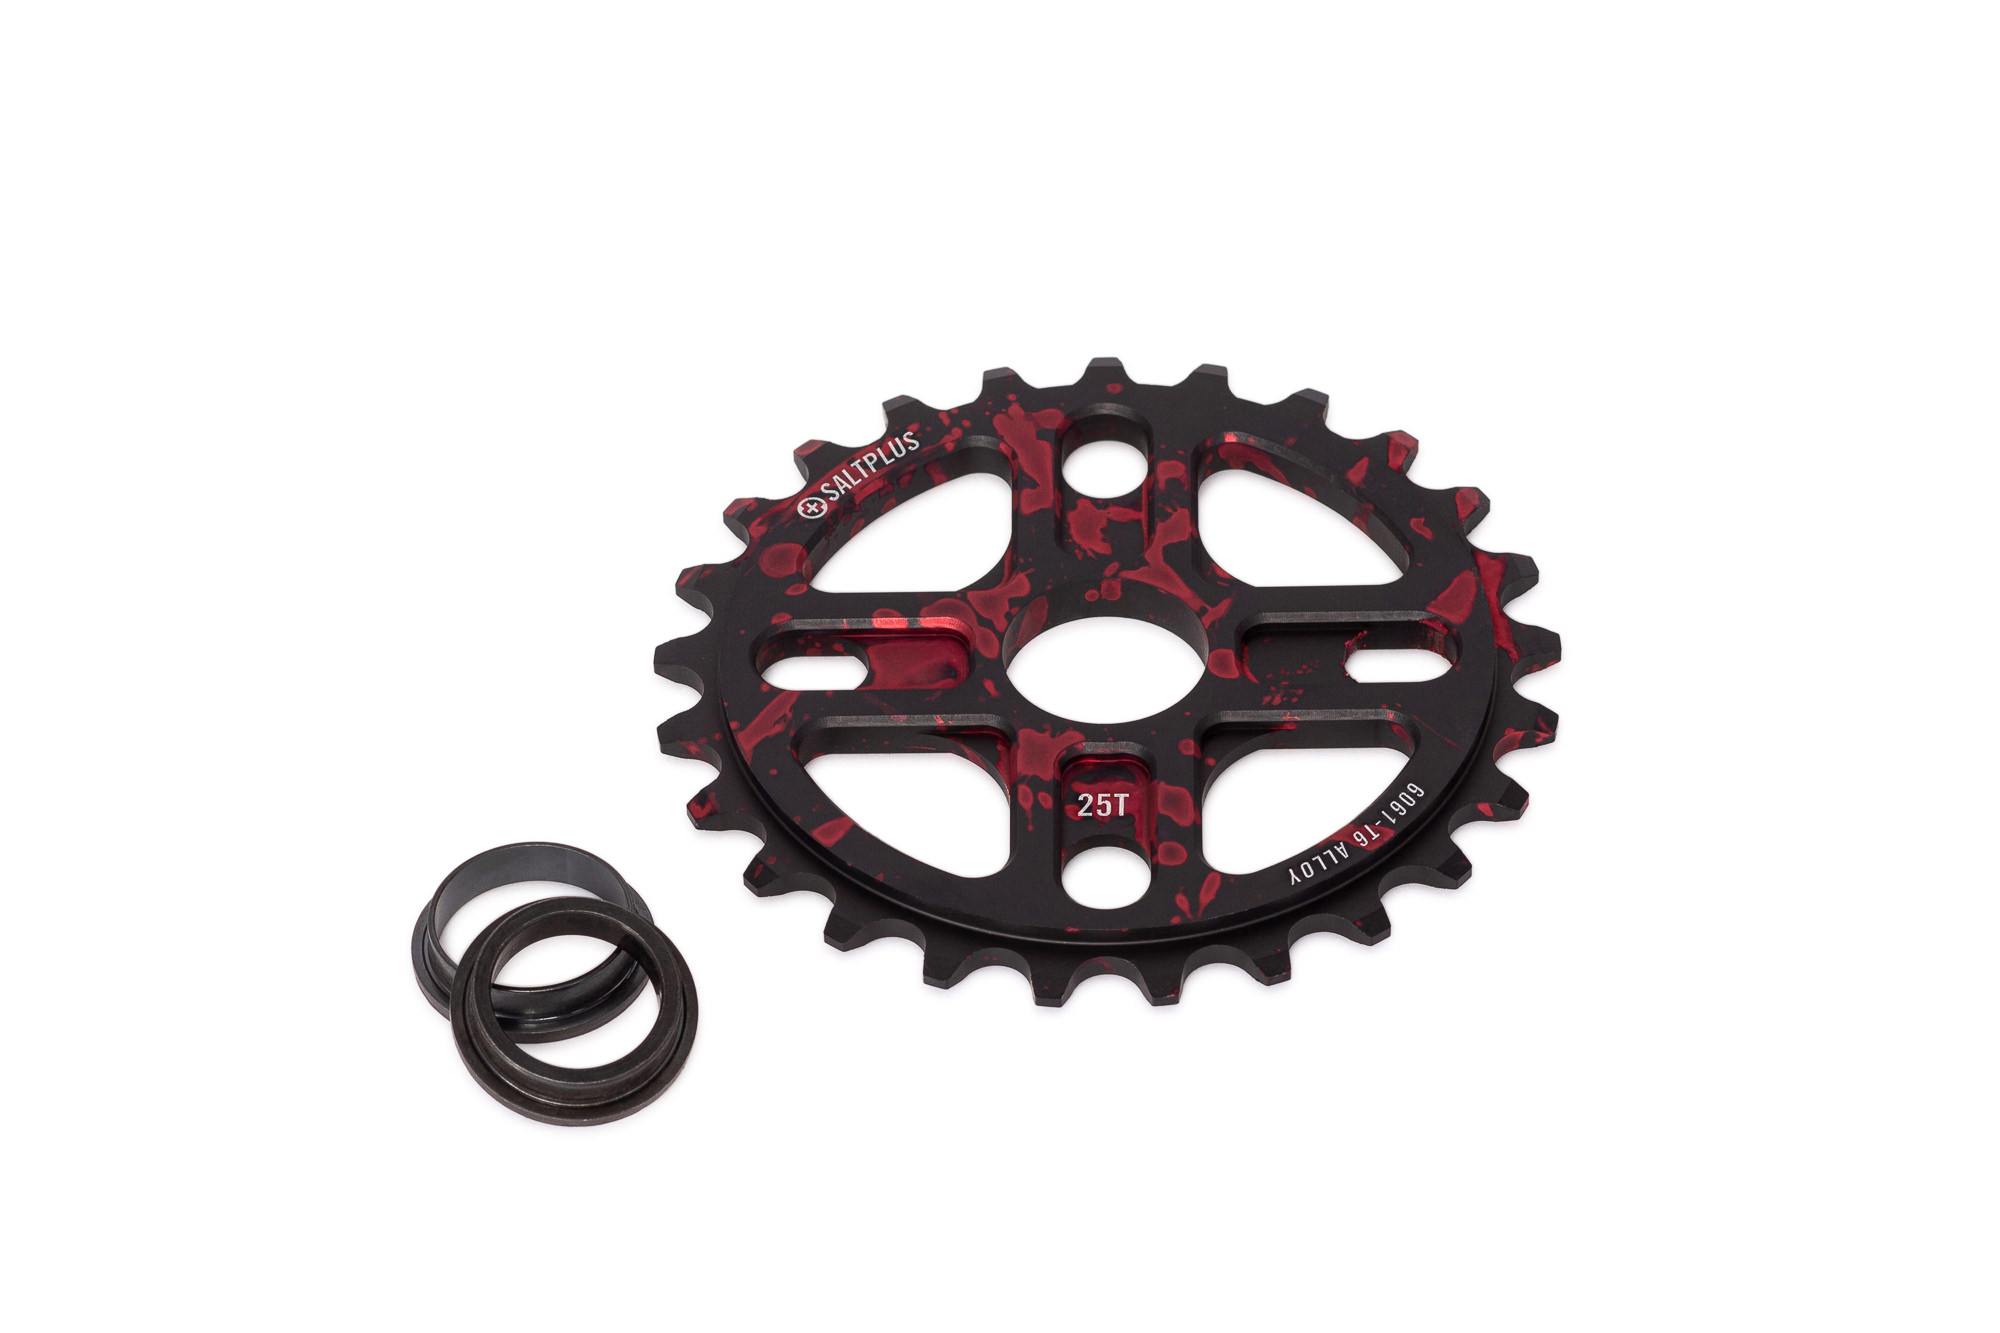 SaltPlus_Manta_sprocket_25t_black_red_splatter_02